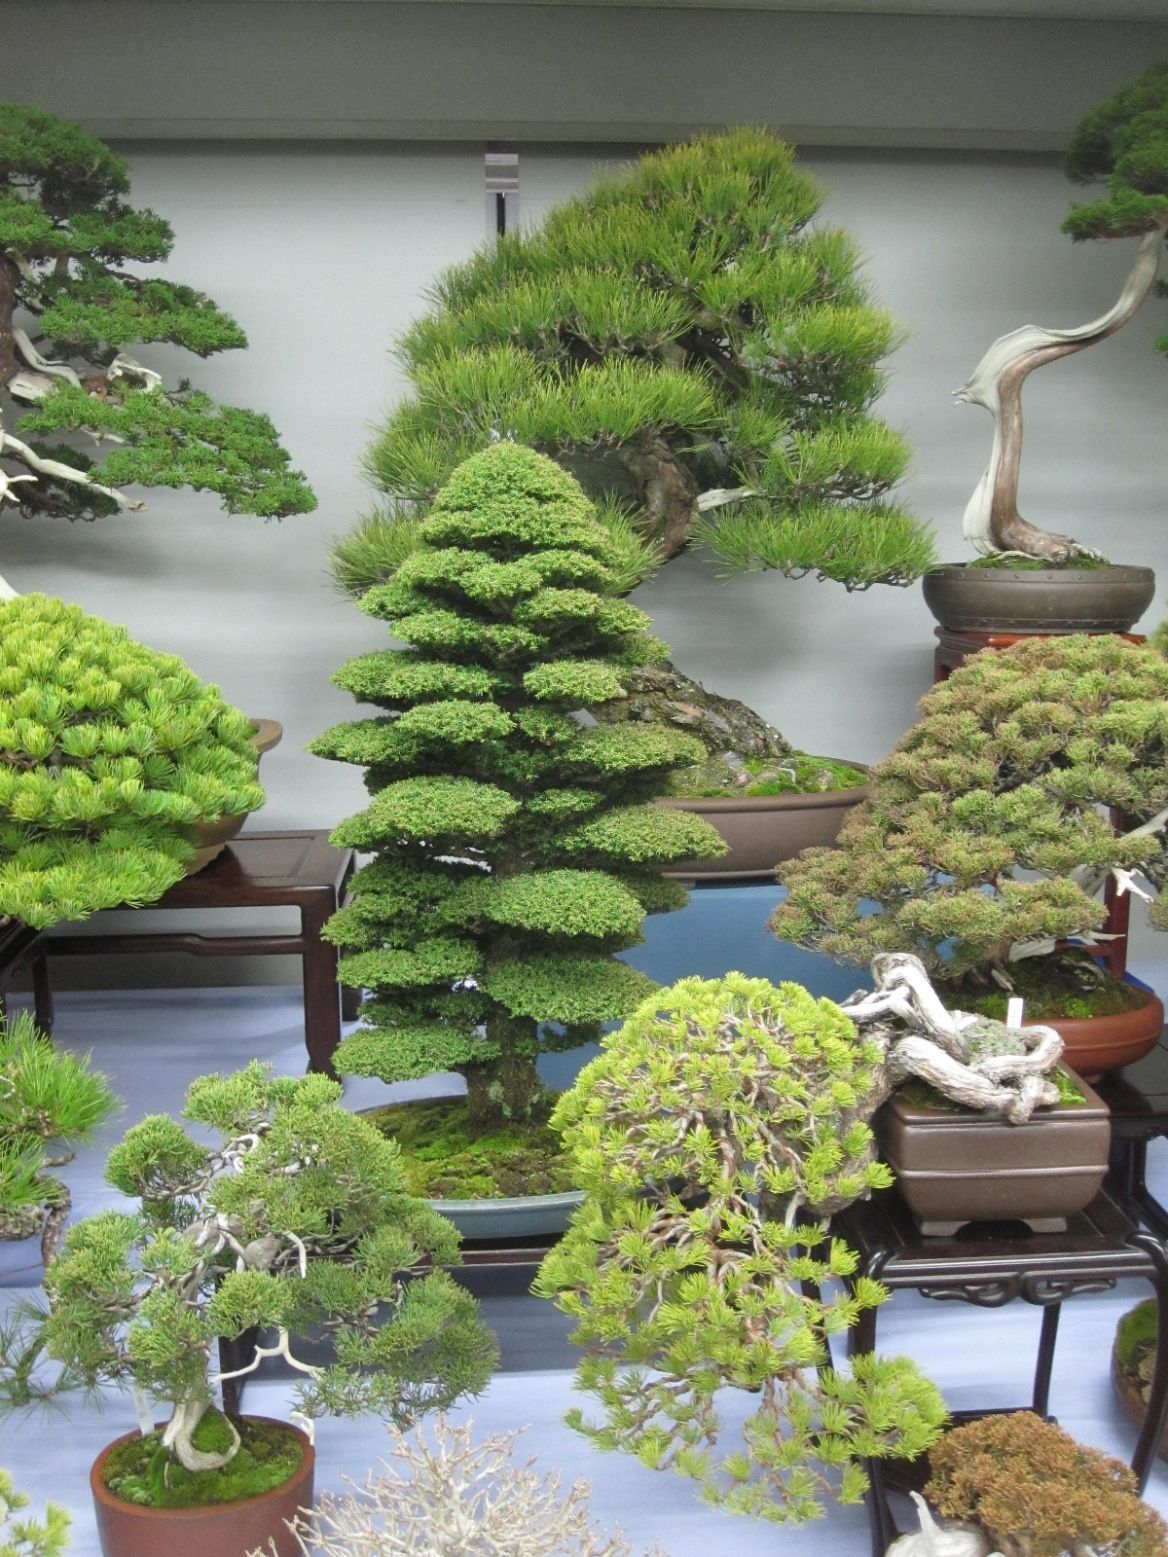 We Be Green Clubbin in 2020 Bonsai styles, Bonsai garden